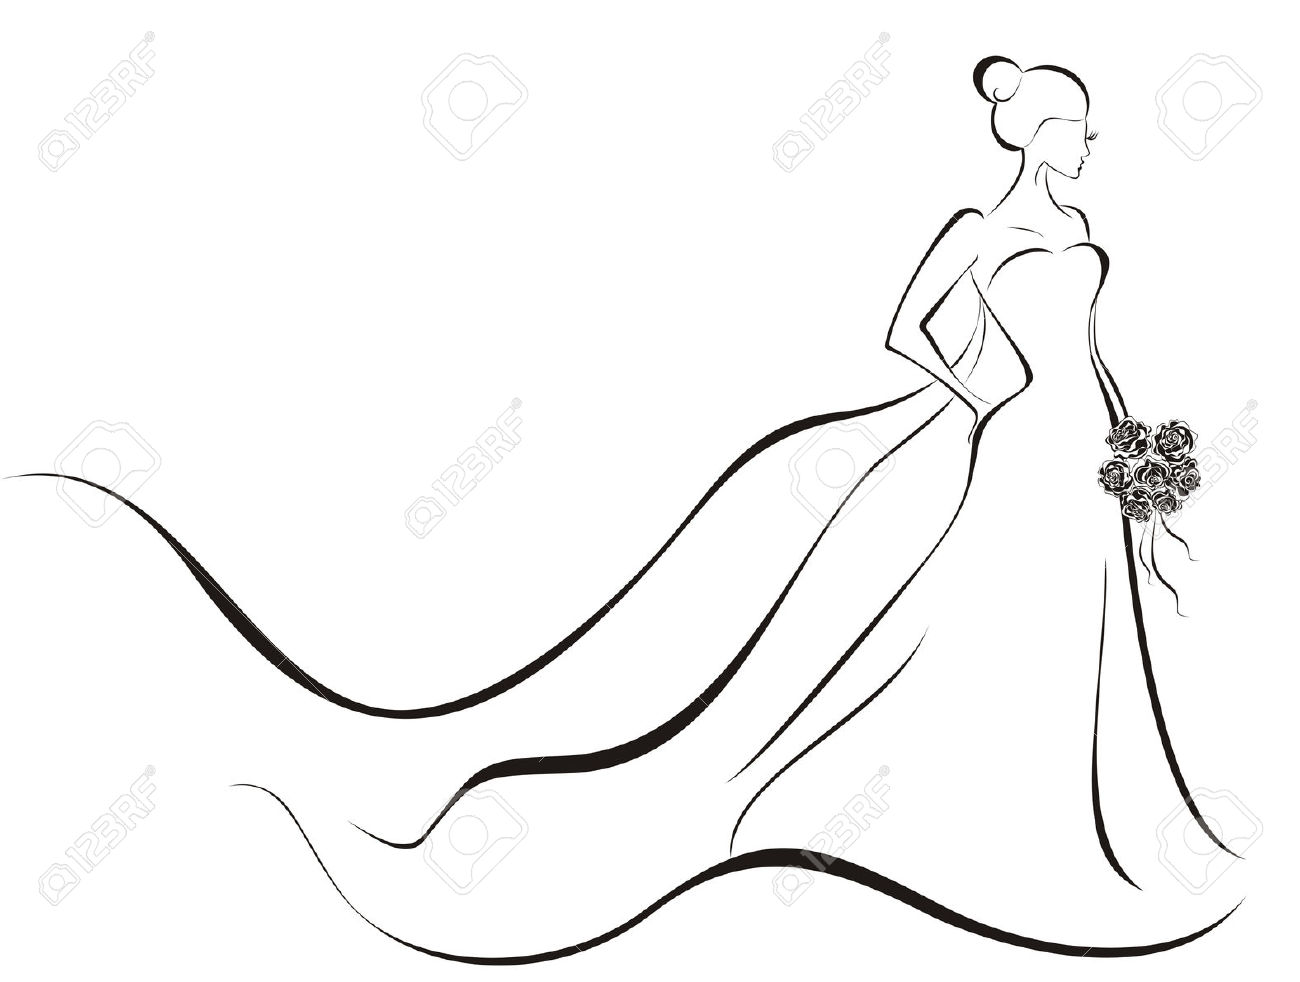 Wedding Gown Silhouette Clipart.